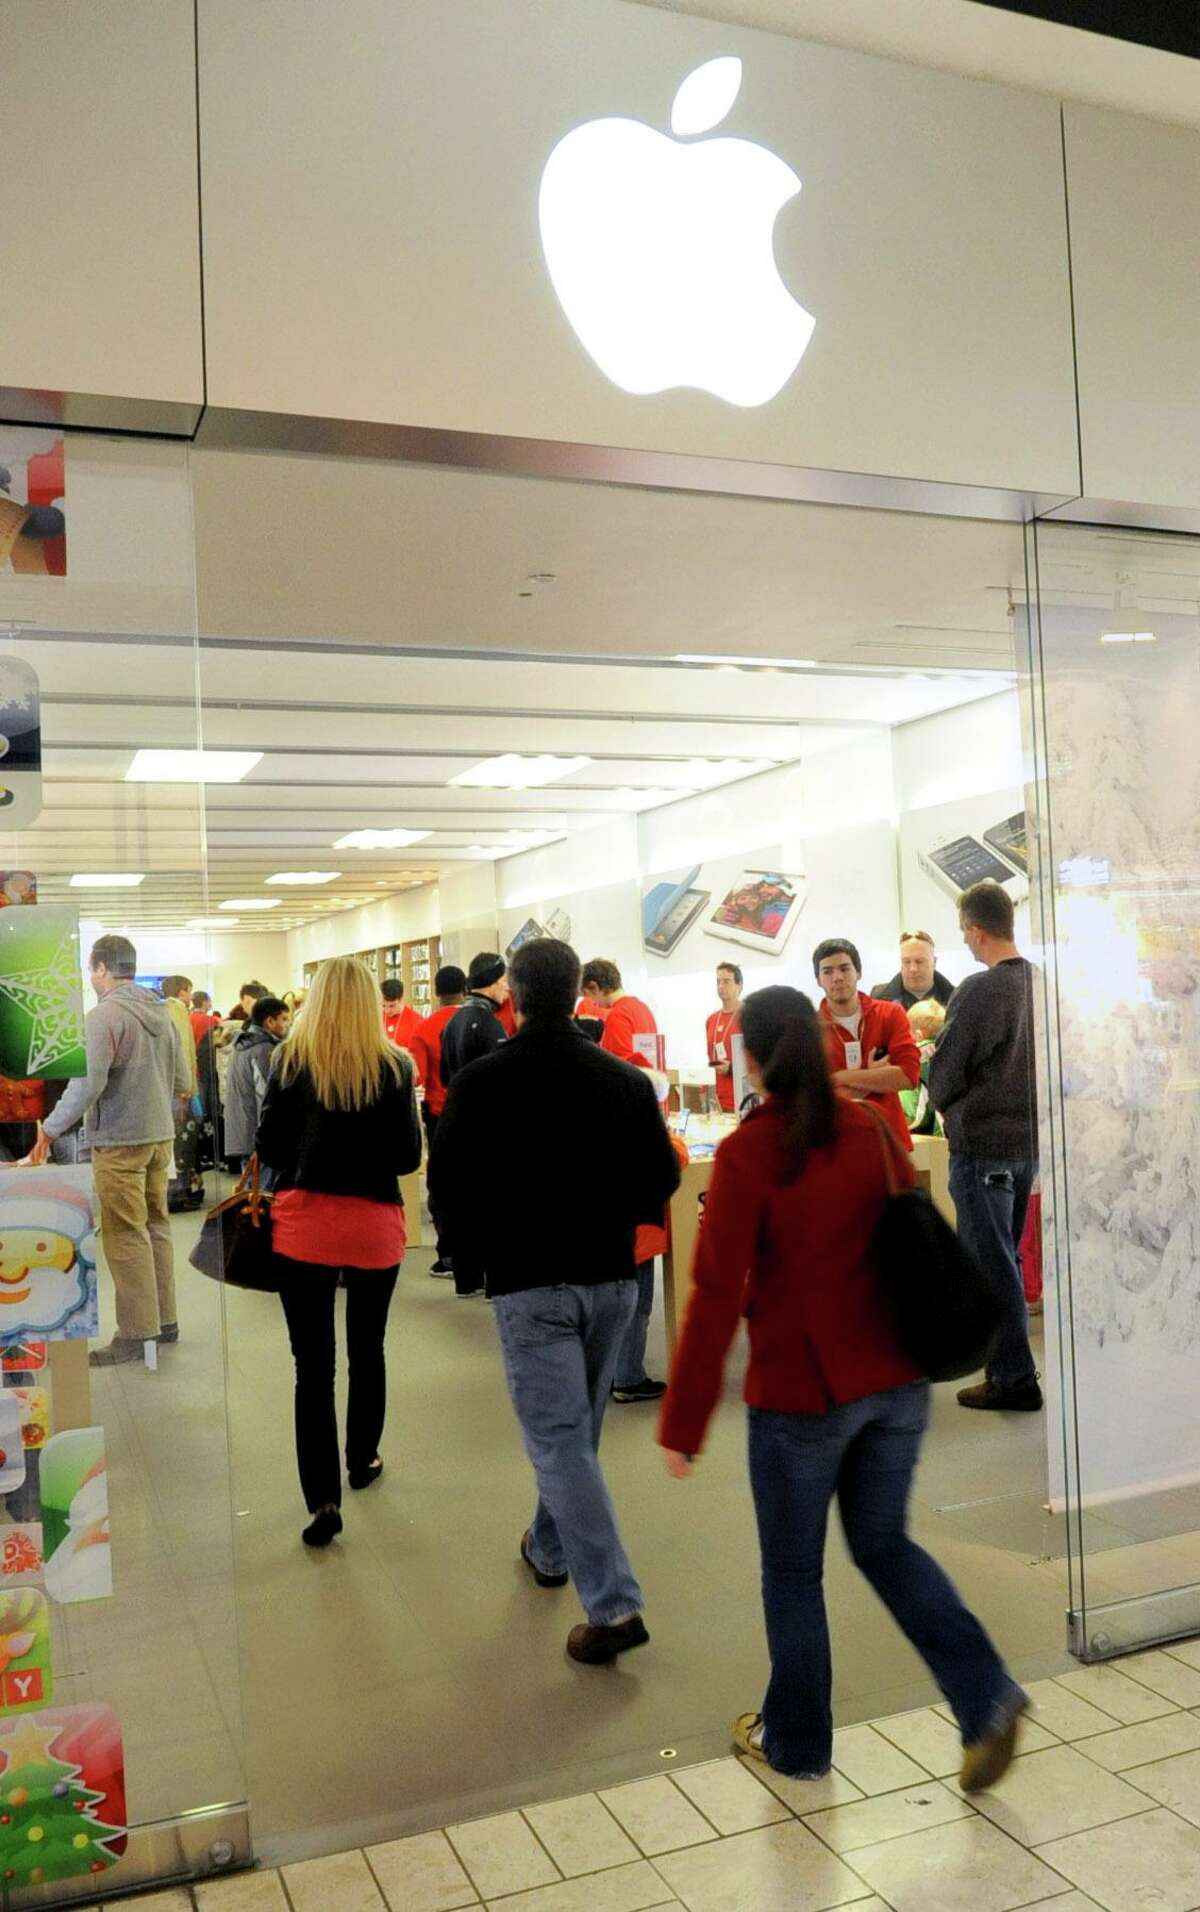 Shoppers enter a crowded Apple Store at Stamford Town Center in Stamford on Dec. 24, 2011. Apple has posted a message on the Stamford store's website that indicates the store is closing and will be replaced by Apple's new store at SoNo Collection mall in Norwalk, Conn.